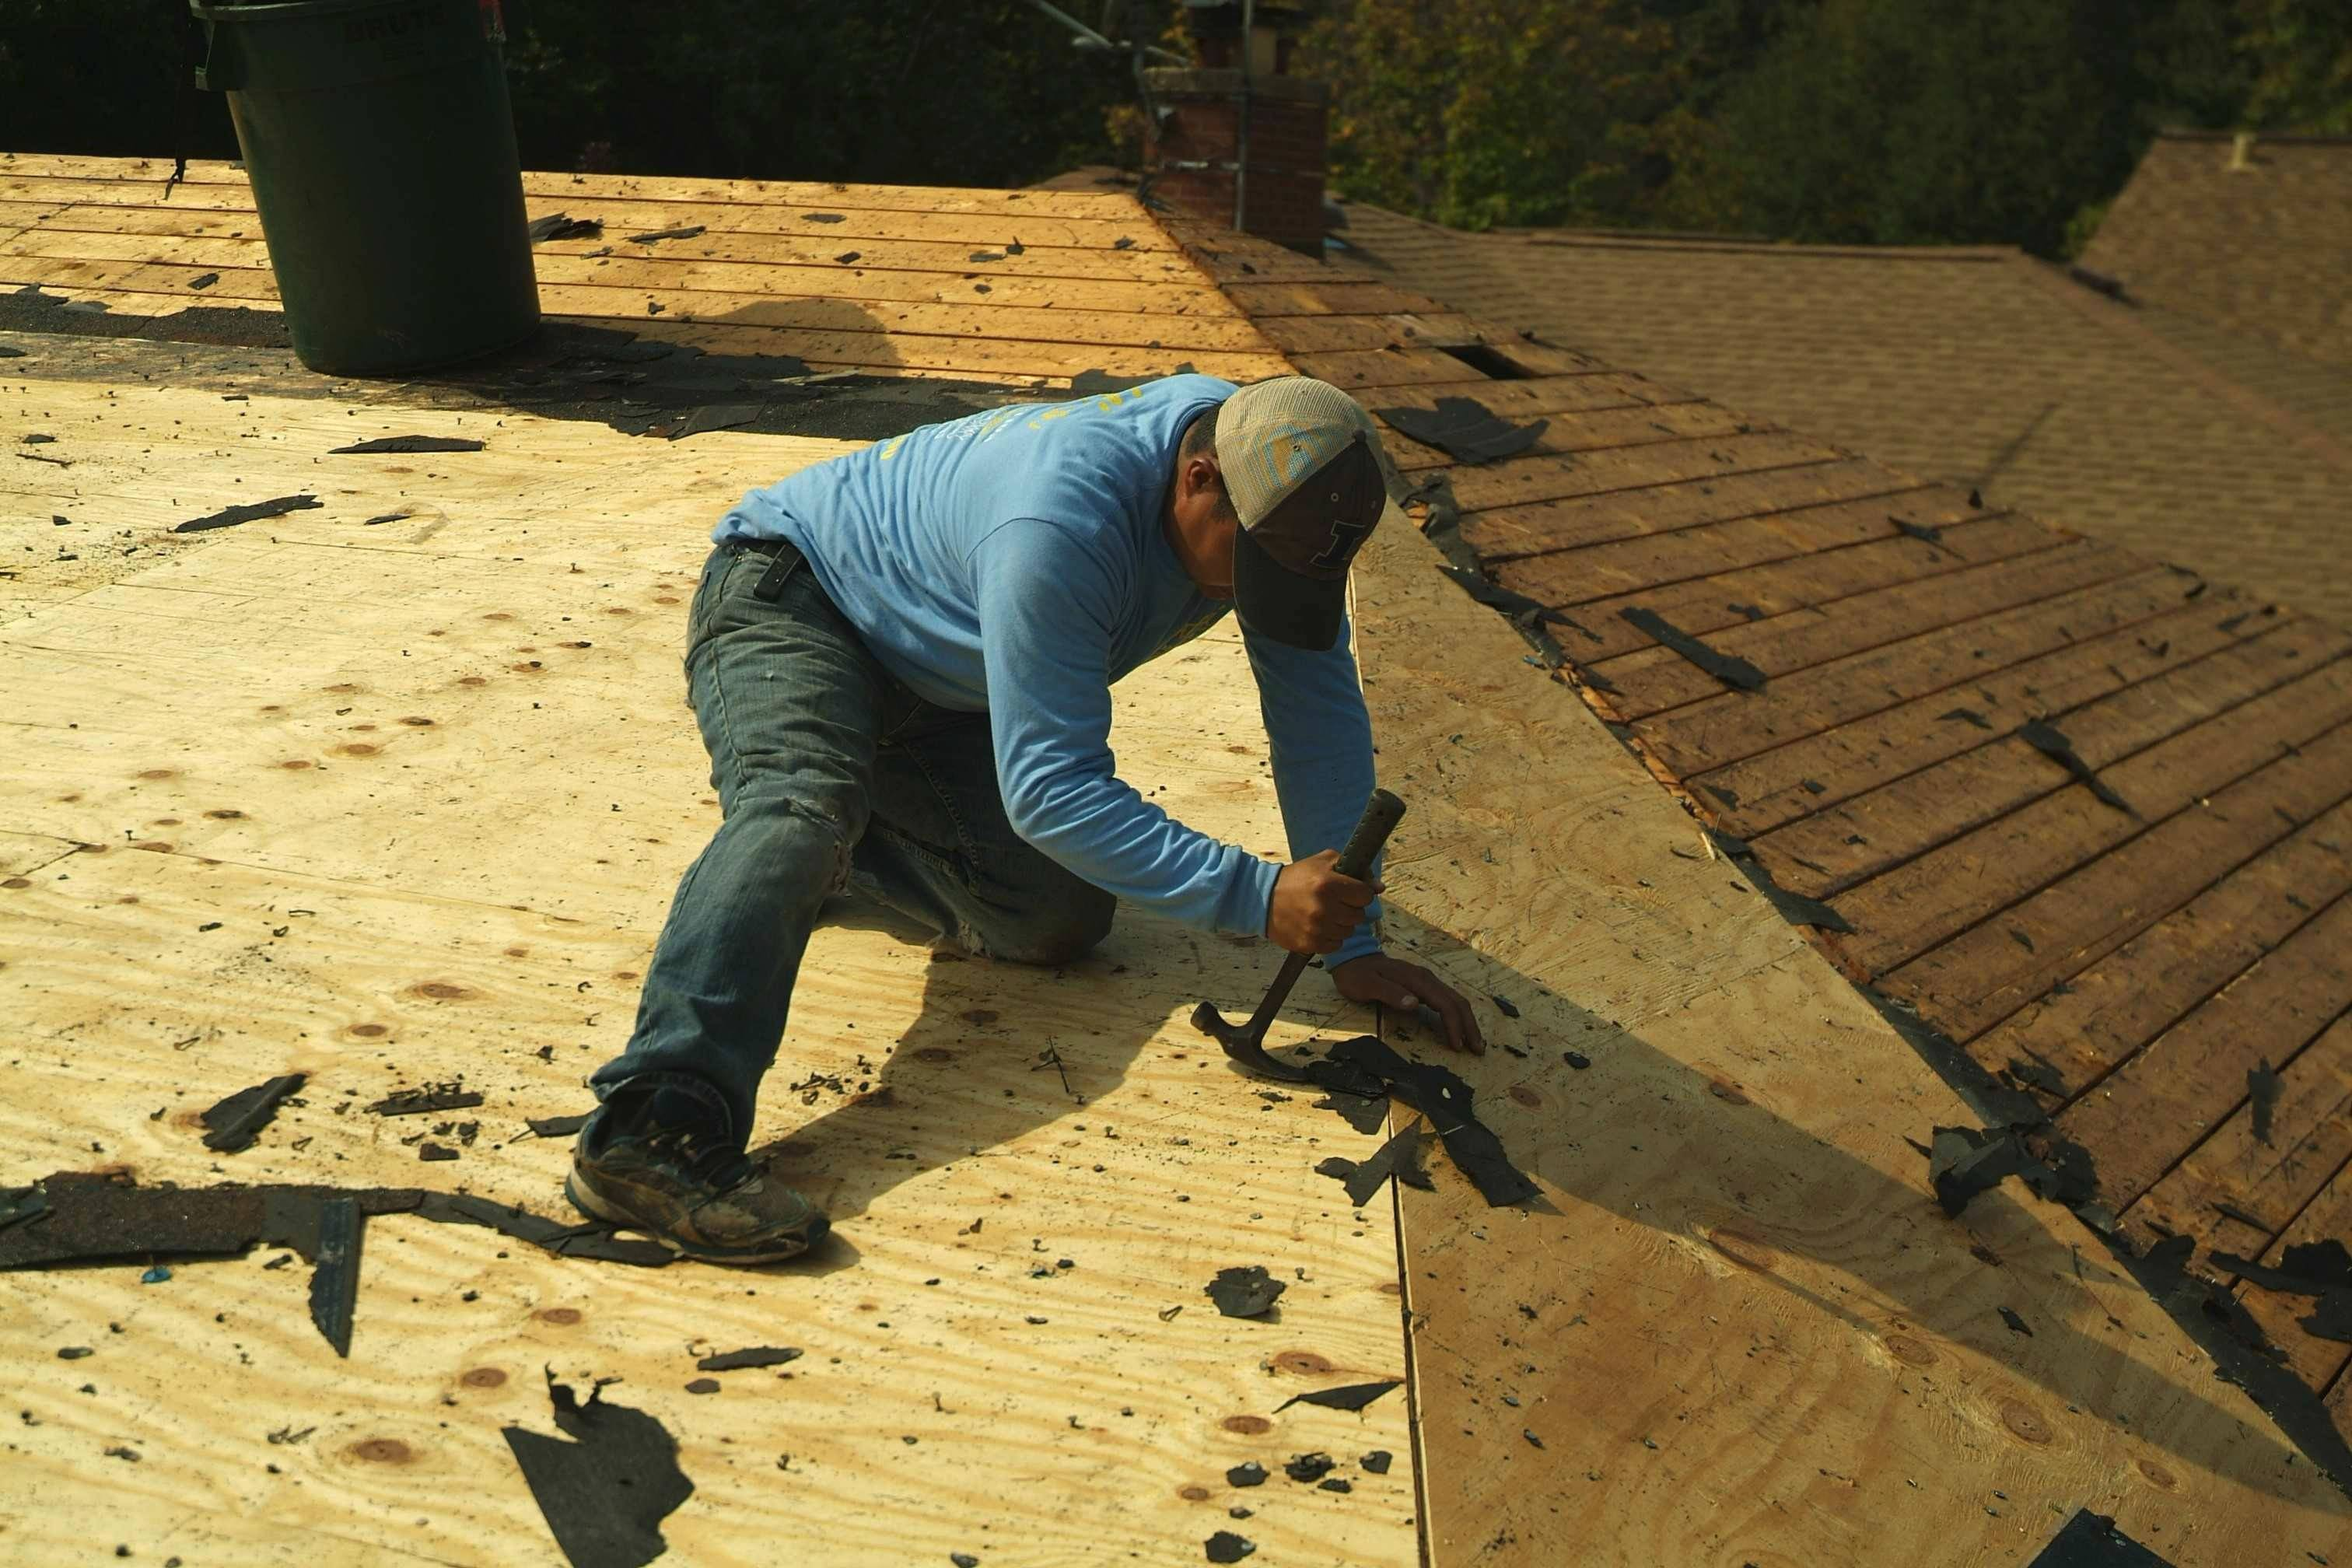 After all of the old shingles have been removed, roofers use claw hammers to remove any remaining nails.